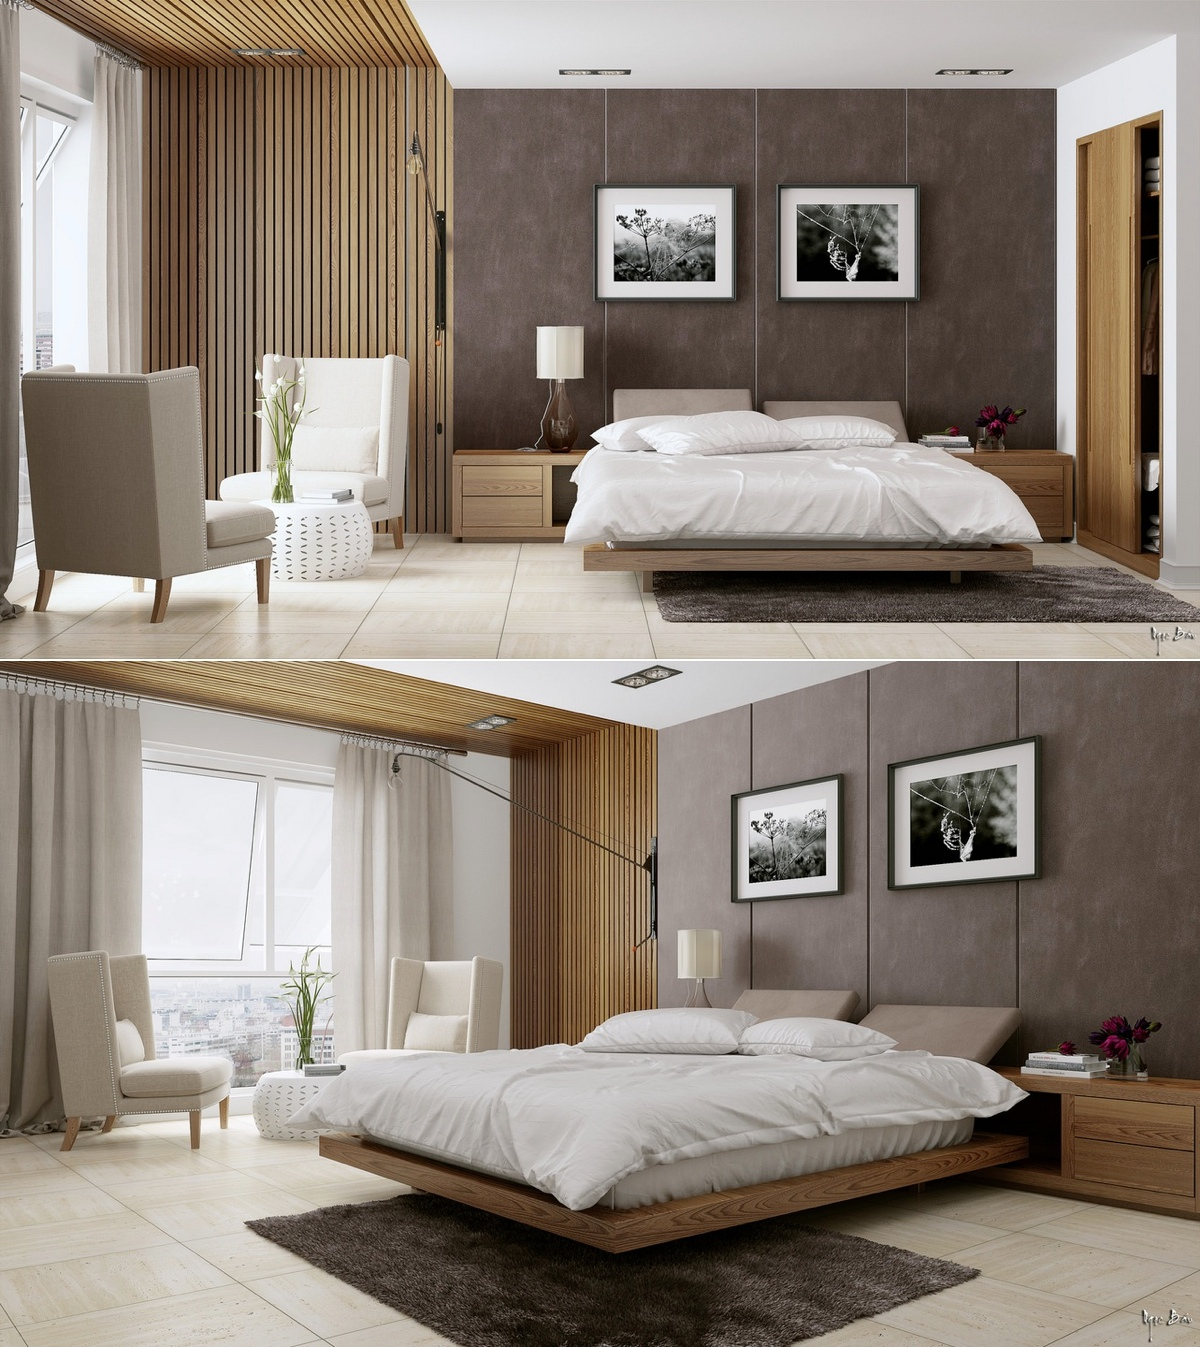 Stylish bedroom designs with beautiful creative details - Bedroom pictures ideas ...